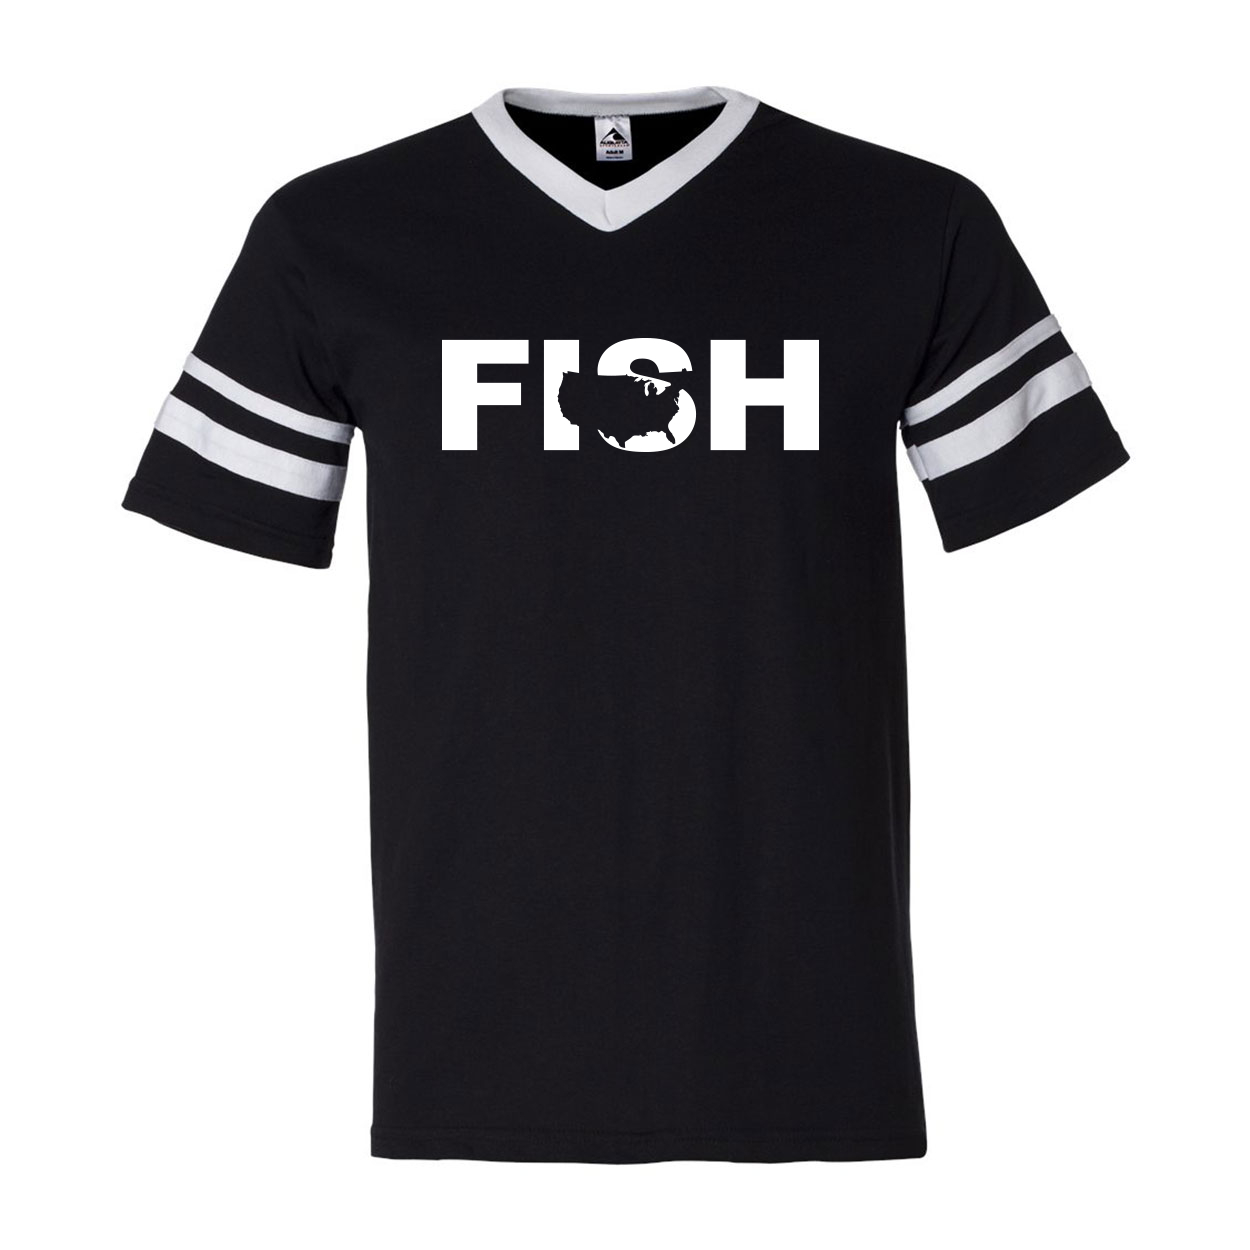 Fish United States Classic Premium Striped Jersey T-Shirt Black/White (White Logo)